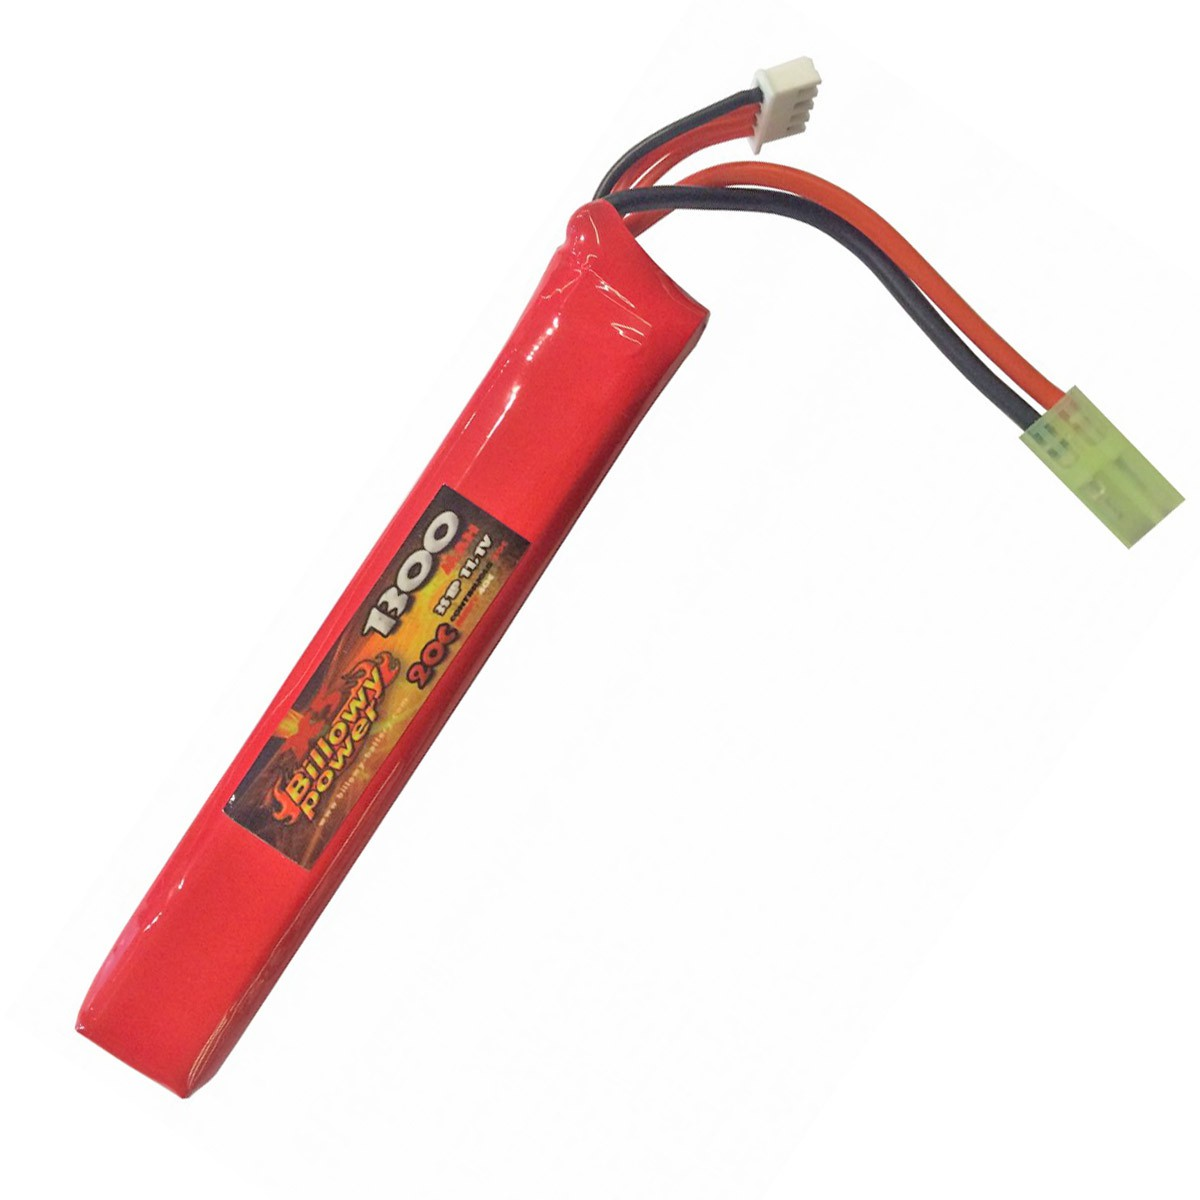 Batteria Lipo 11.1V Billowy Power 1300 mAh Ricaricabile 20C Softair